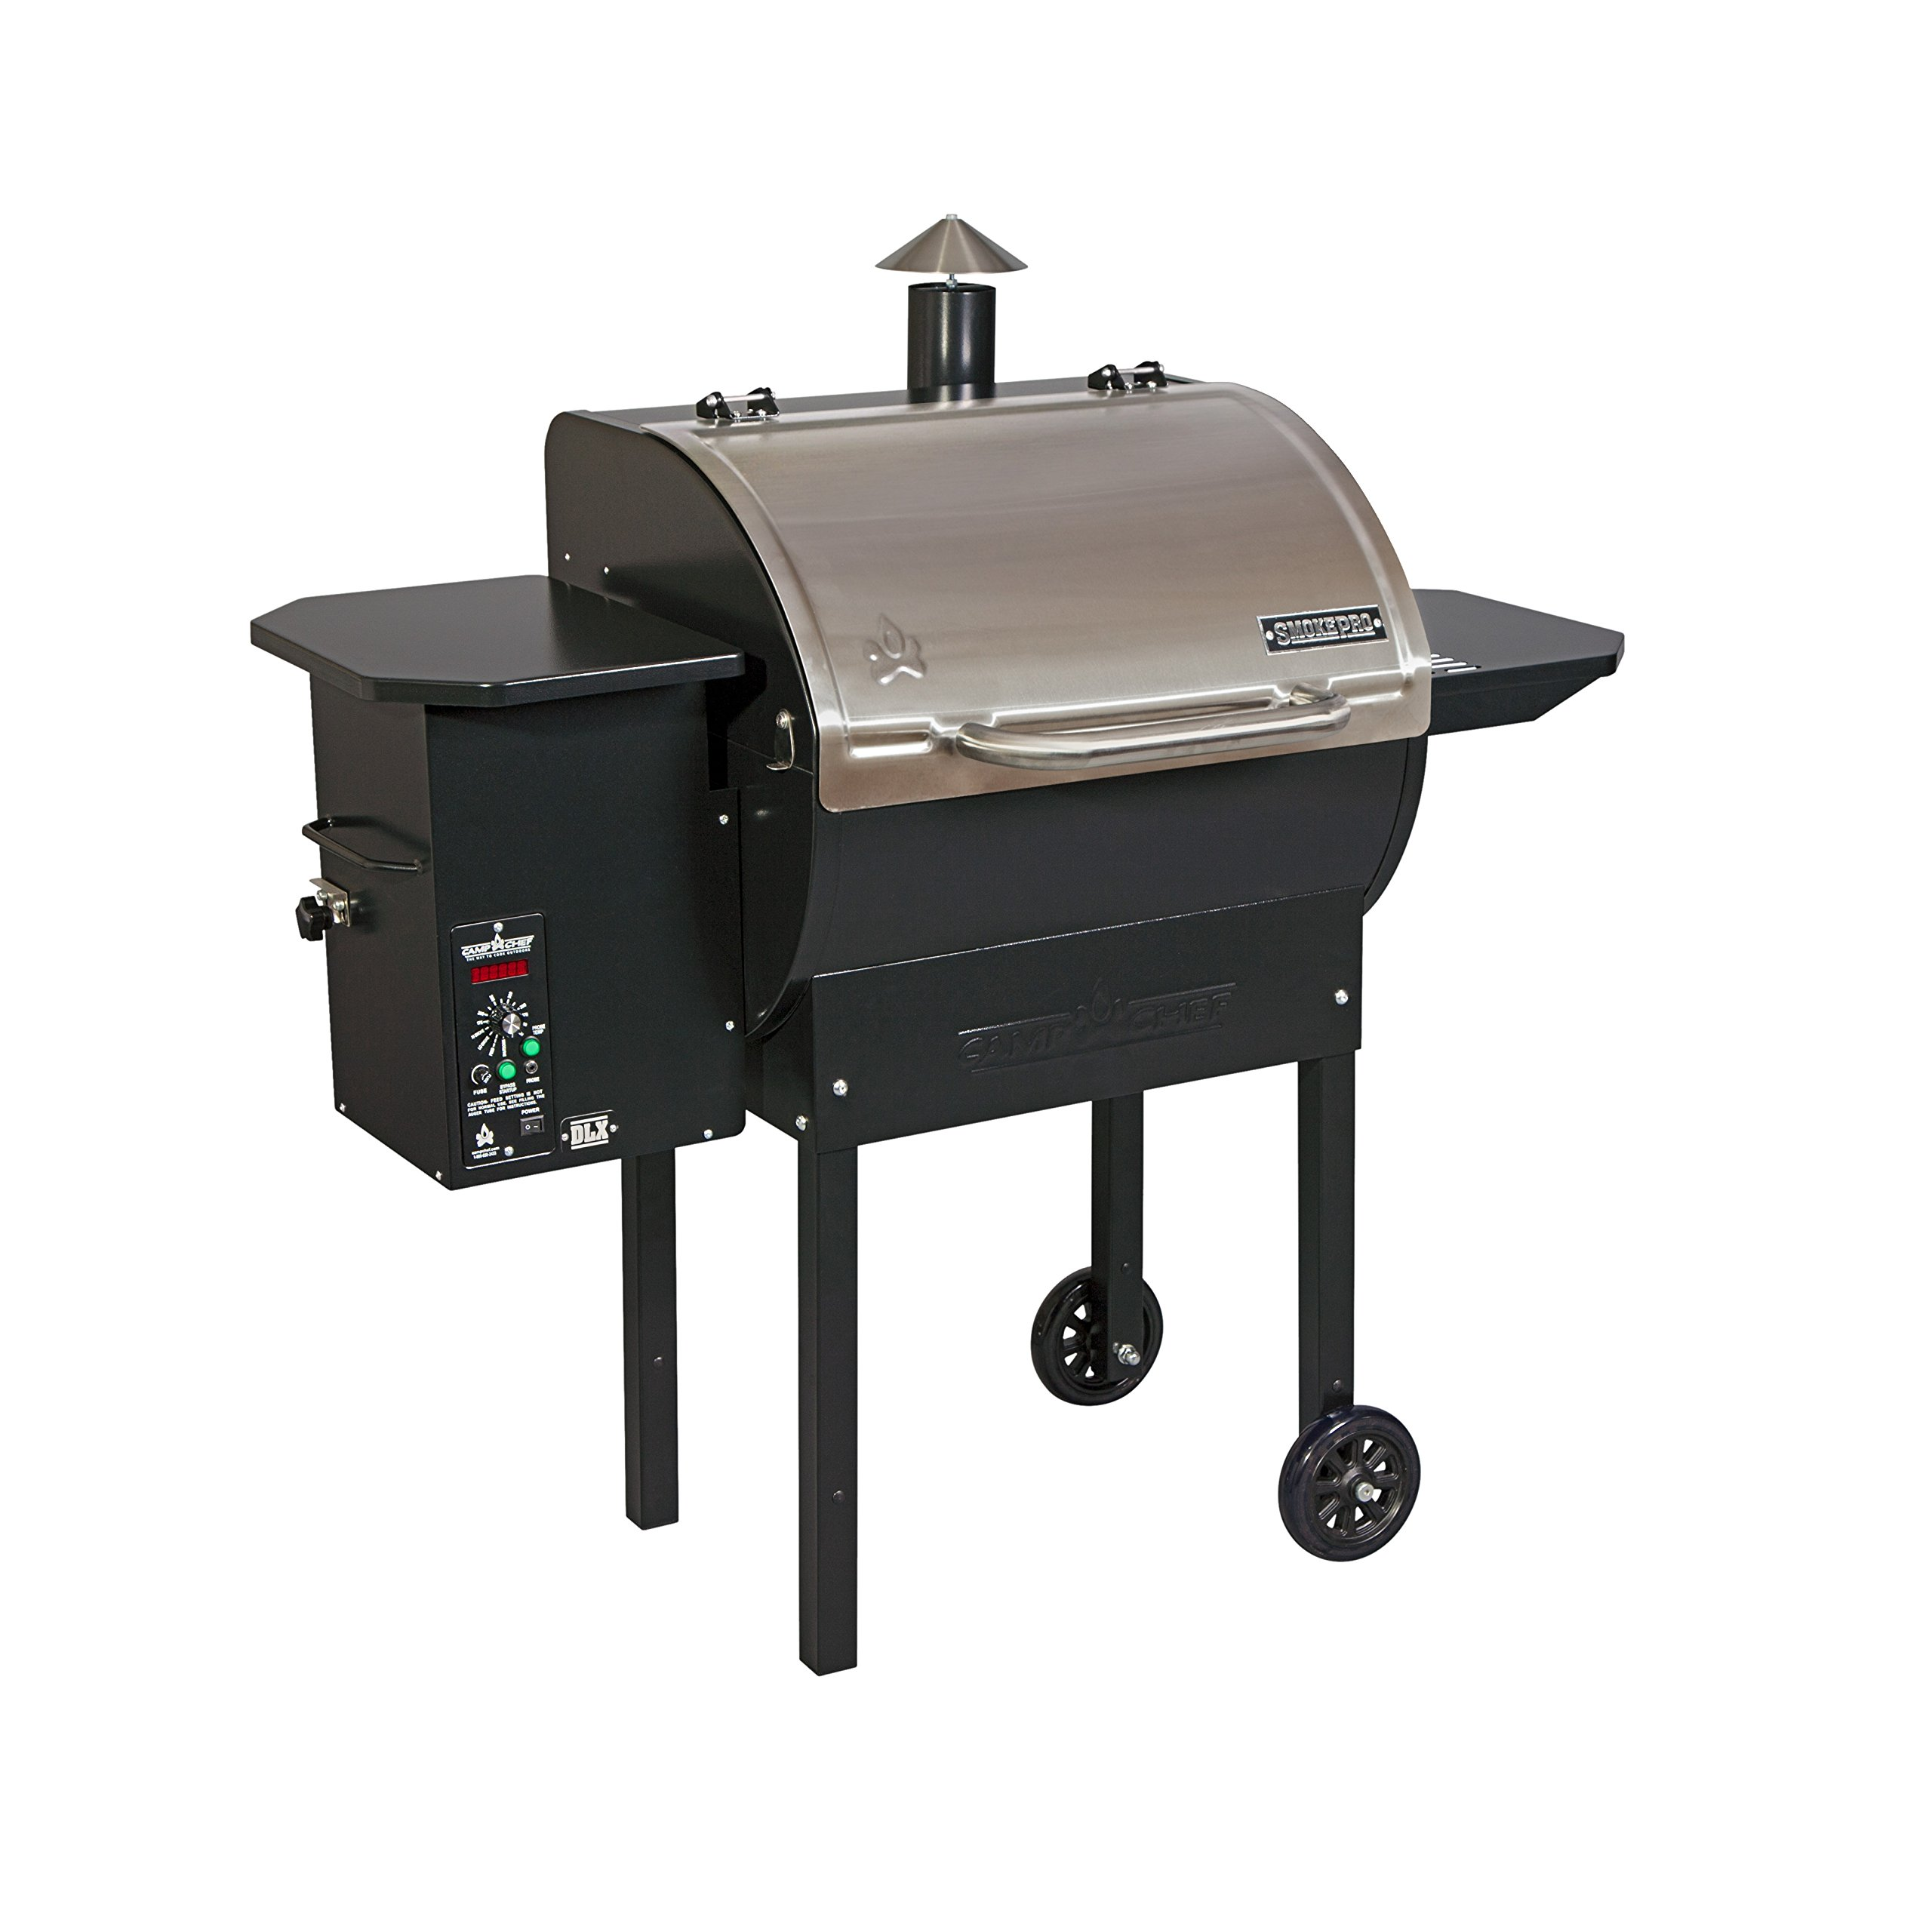 Camp Chef SmokePro Stainless DLX Pellet Grill by Camp Chef